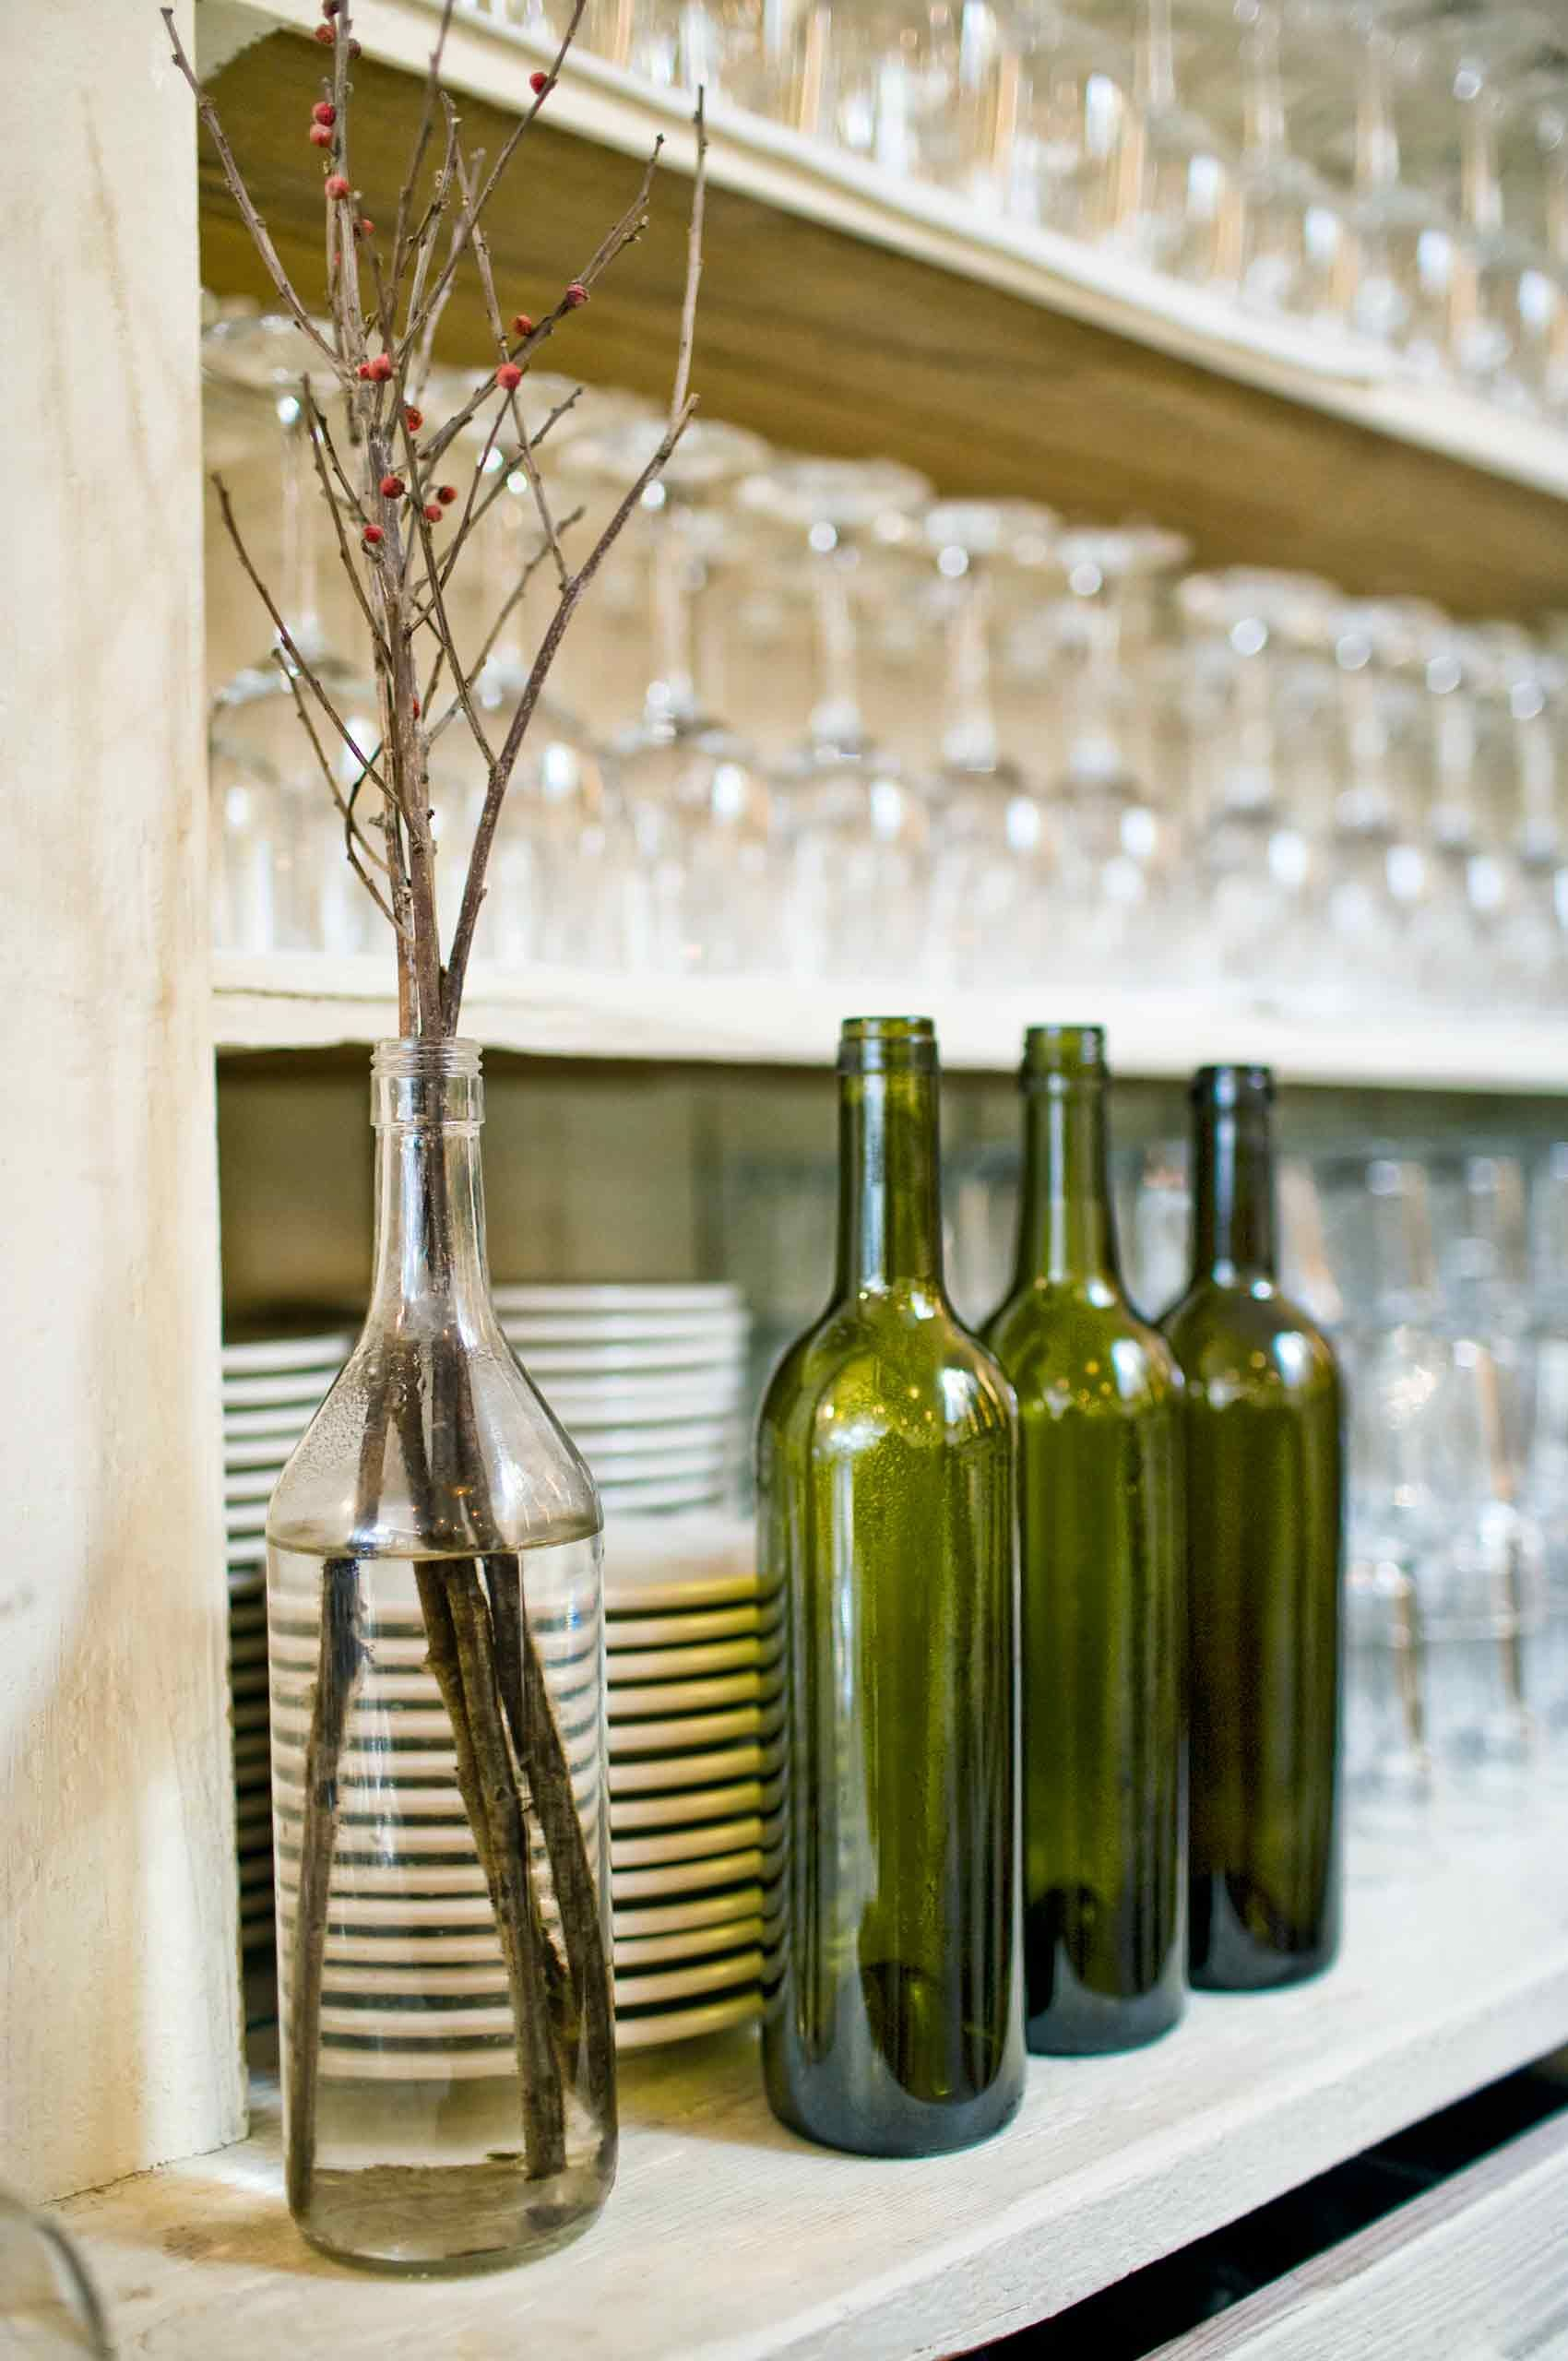 Bottles-and-twigs-Restaurant-InteriorDetail-by-HenrikOlundPhotography..jpg